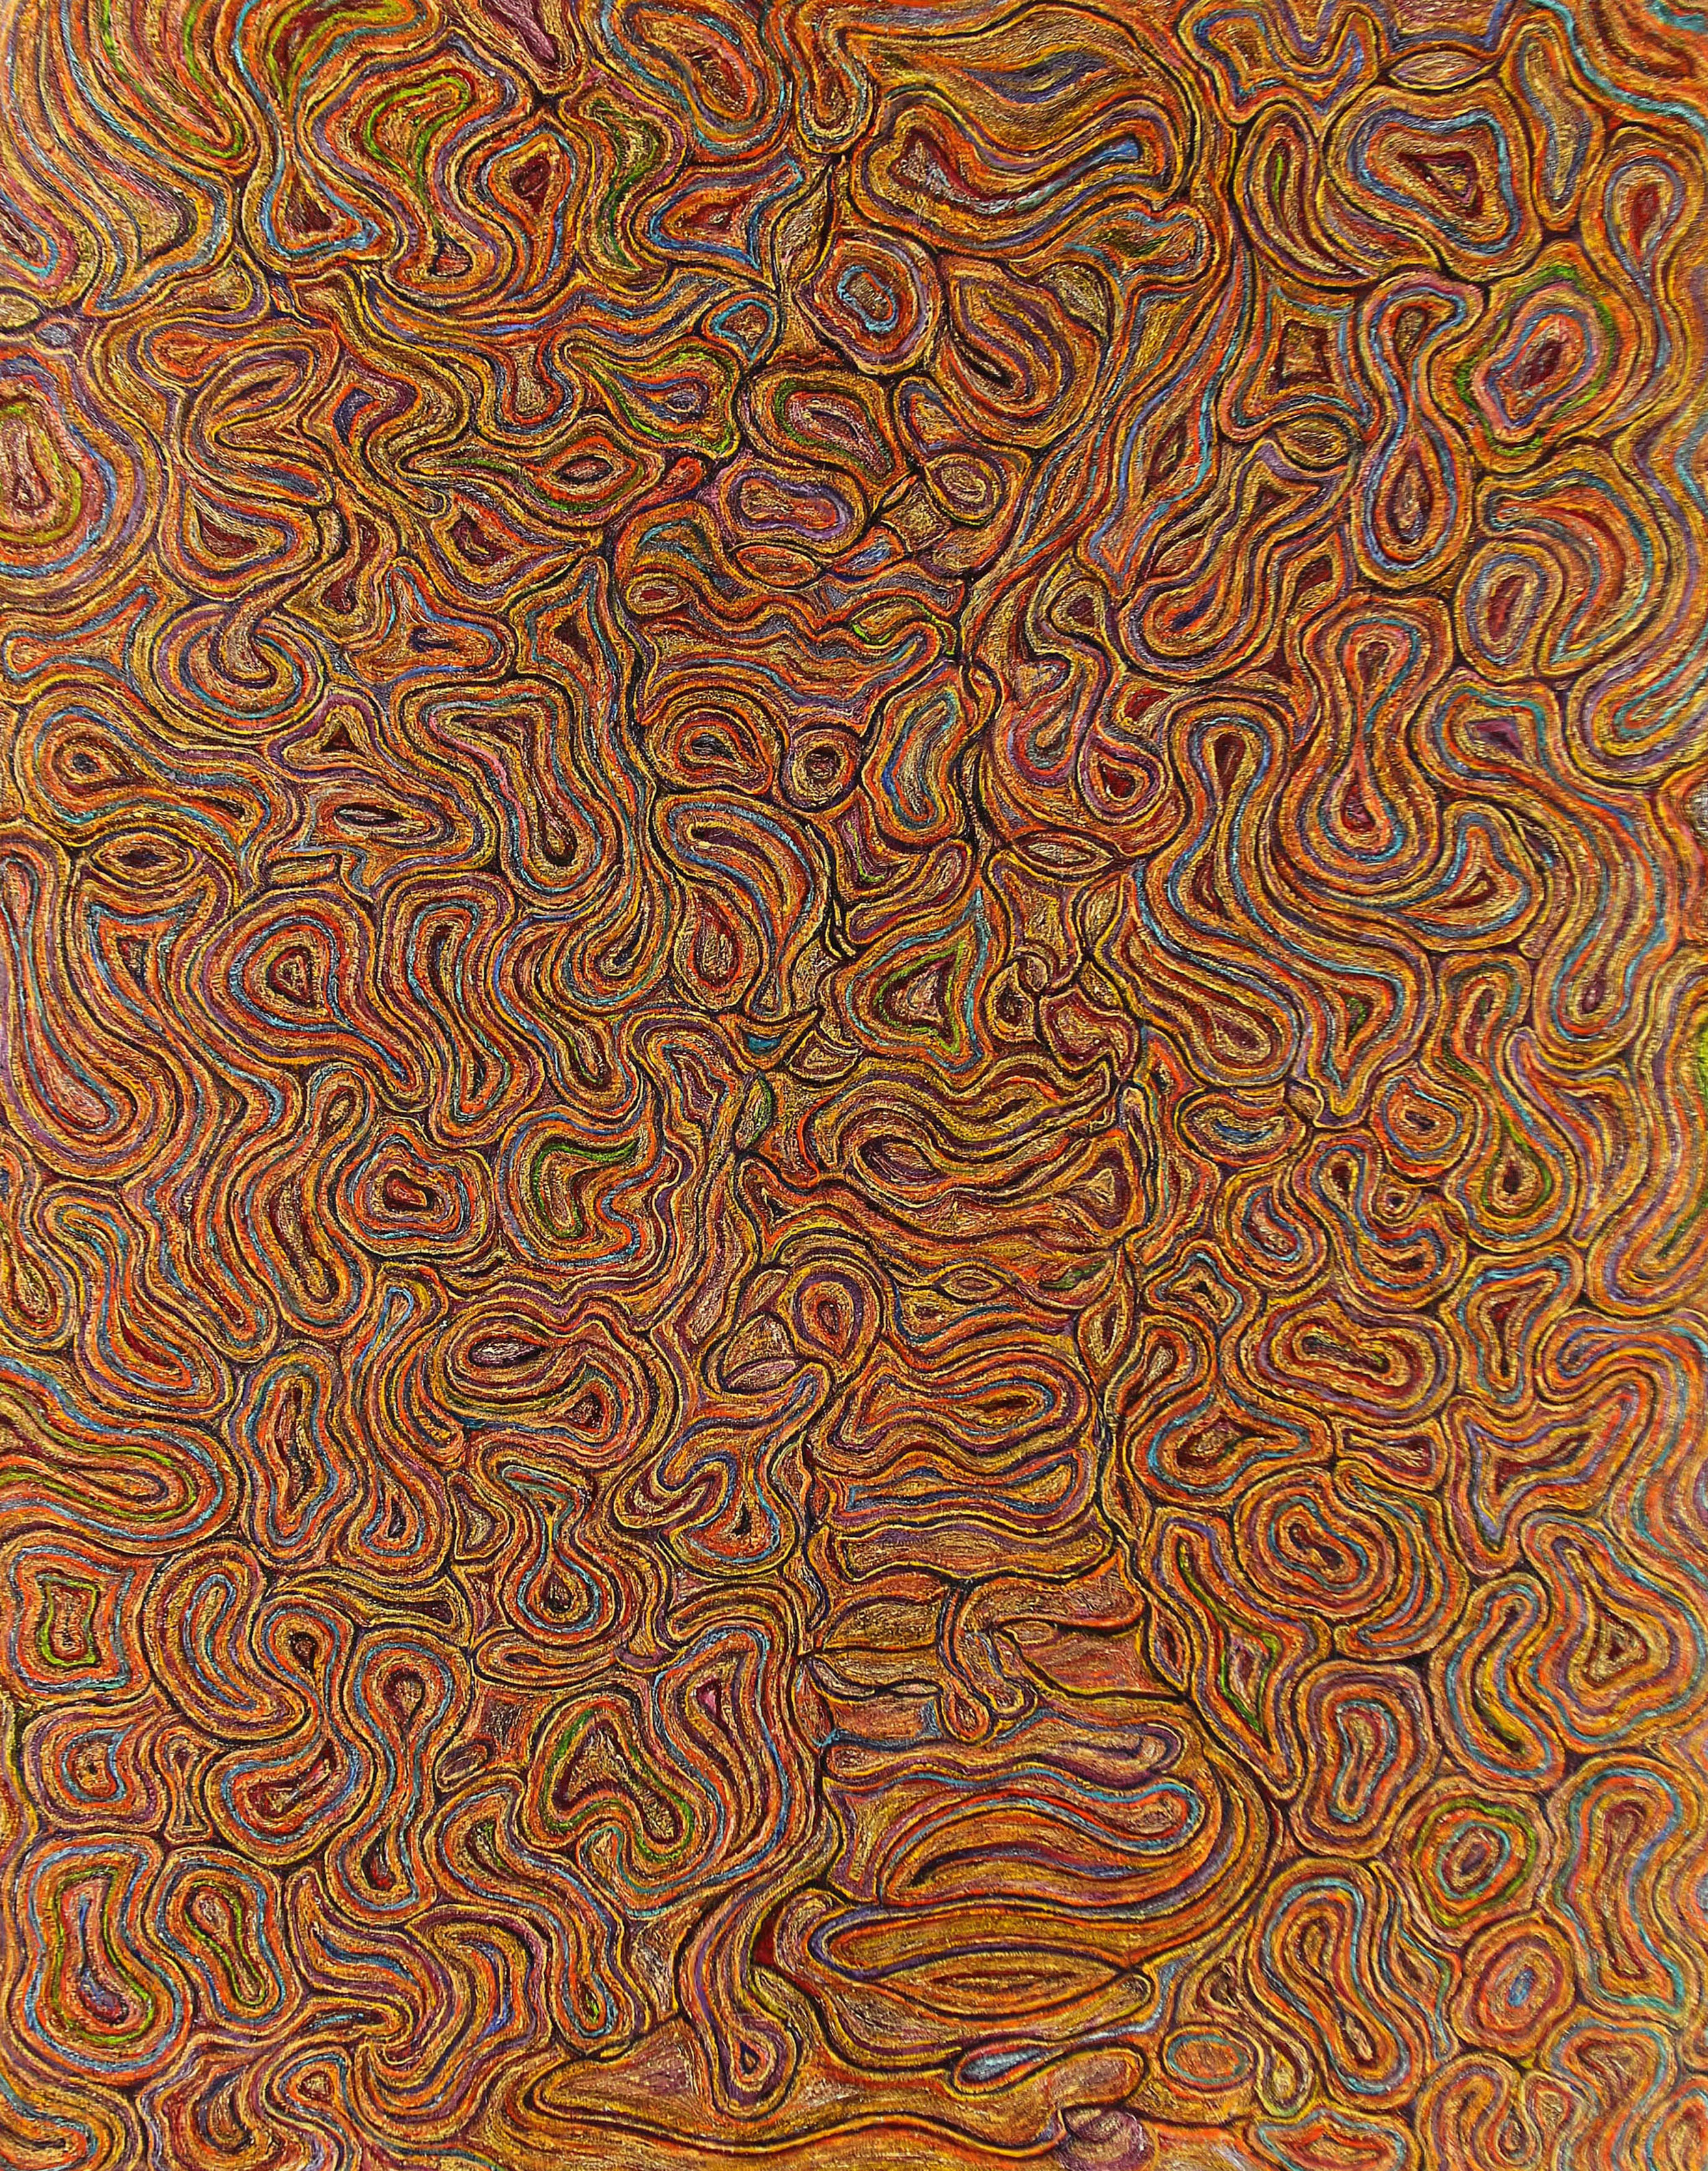 """Presence"", 2019, oil on canvas, 56"" x 44"""